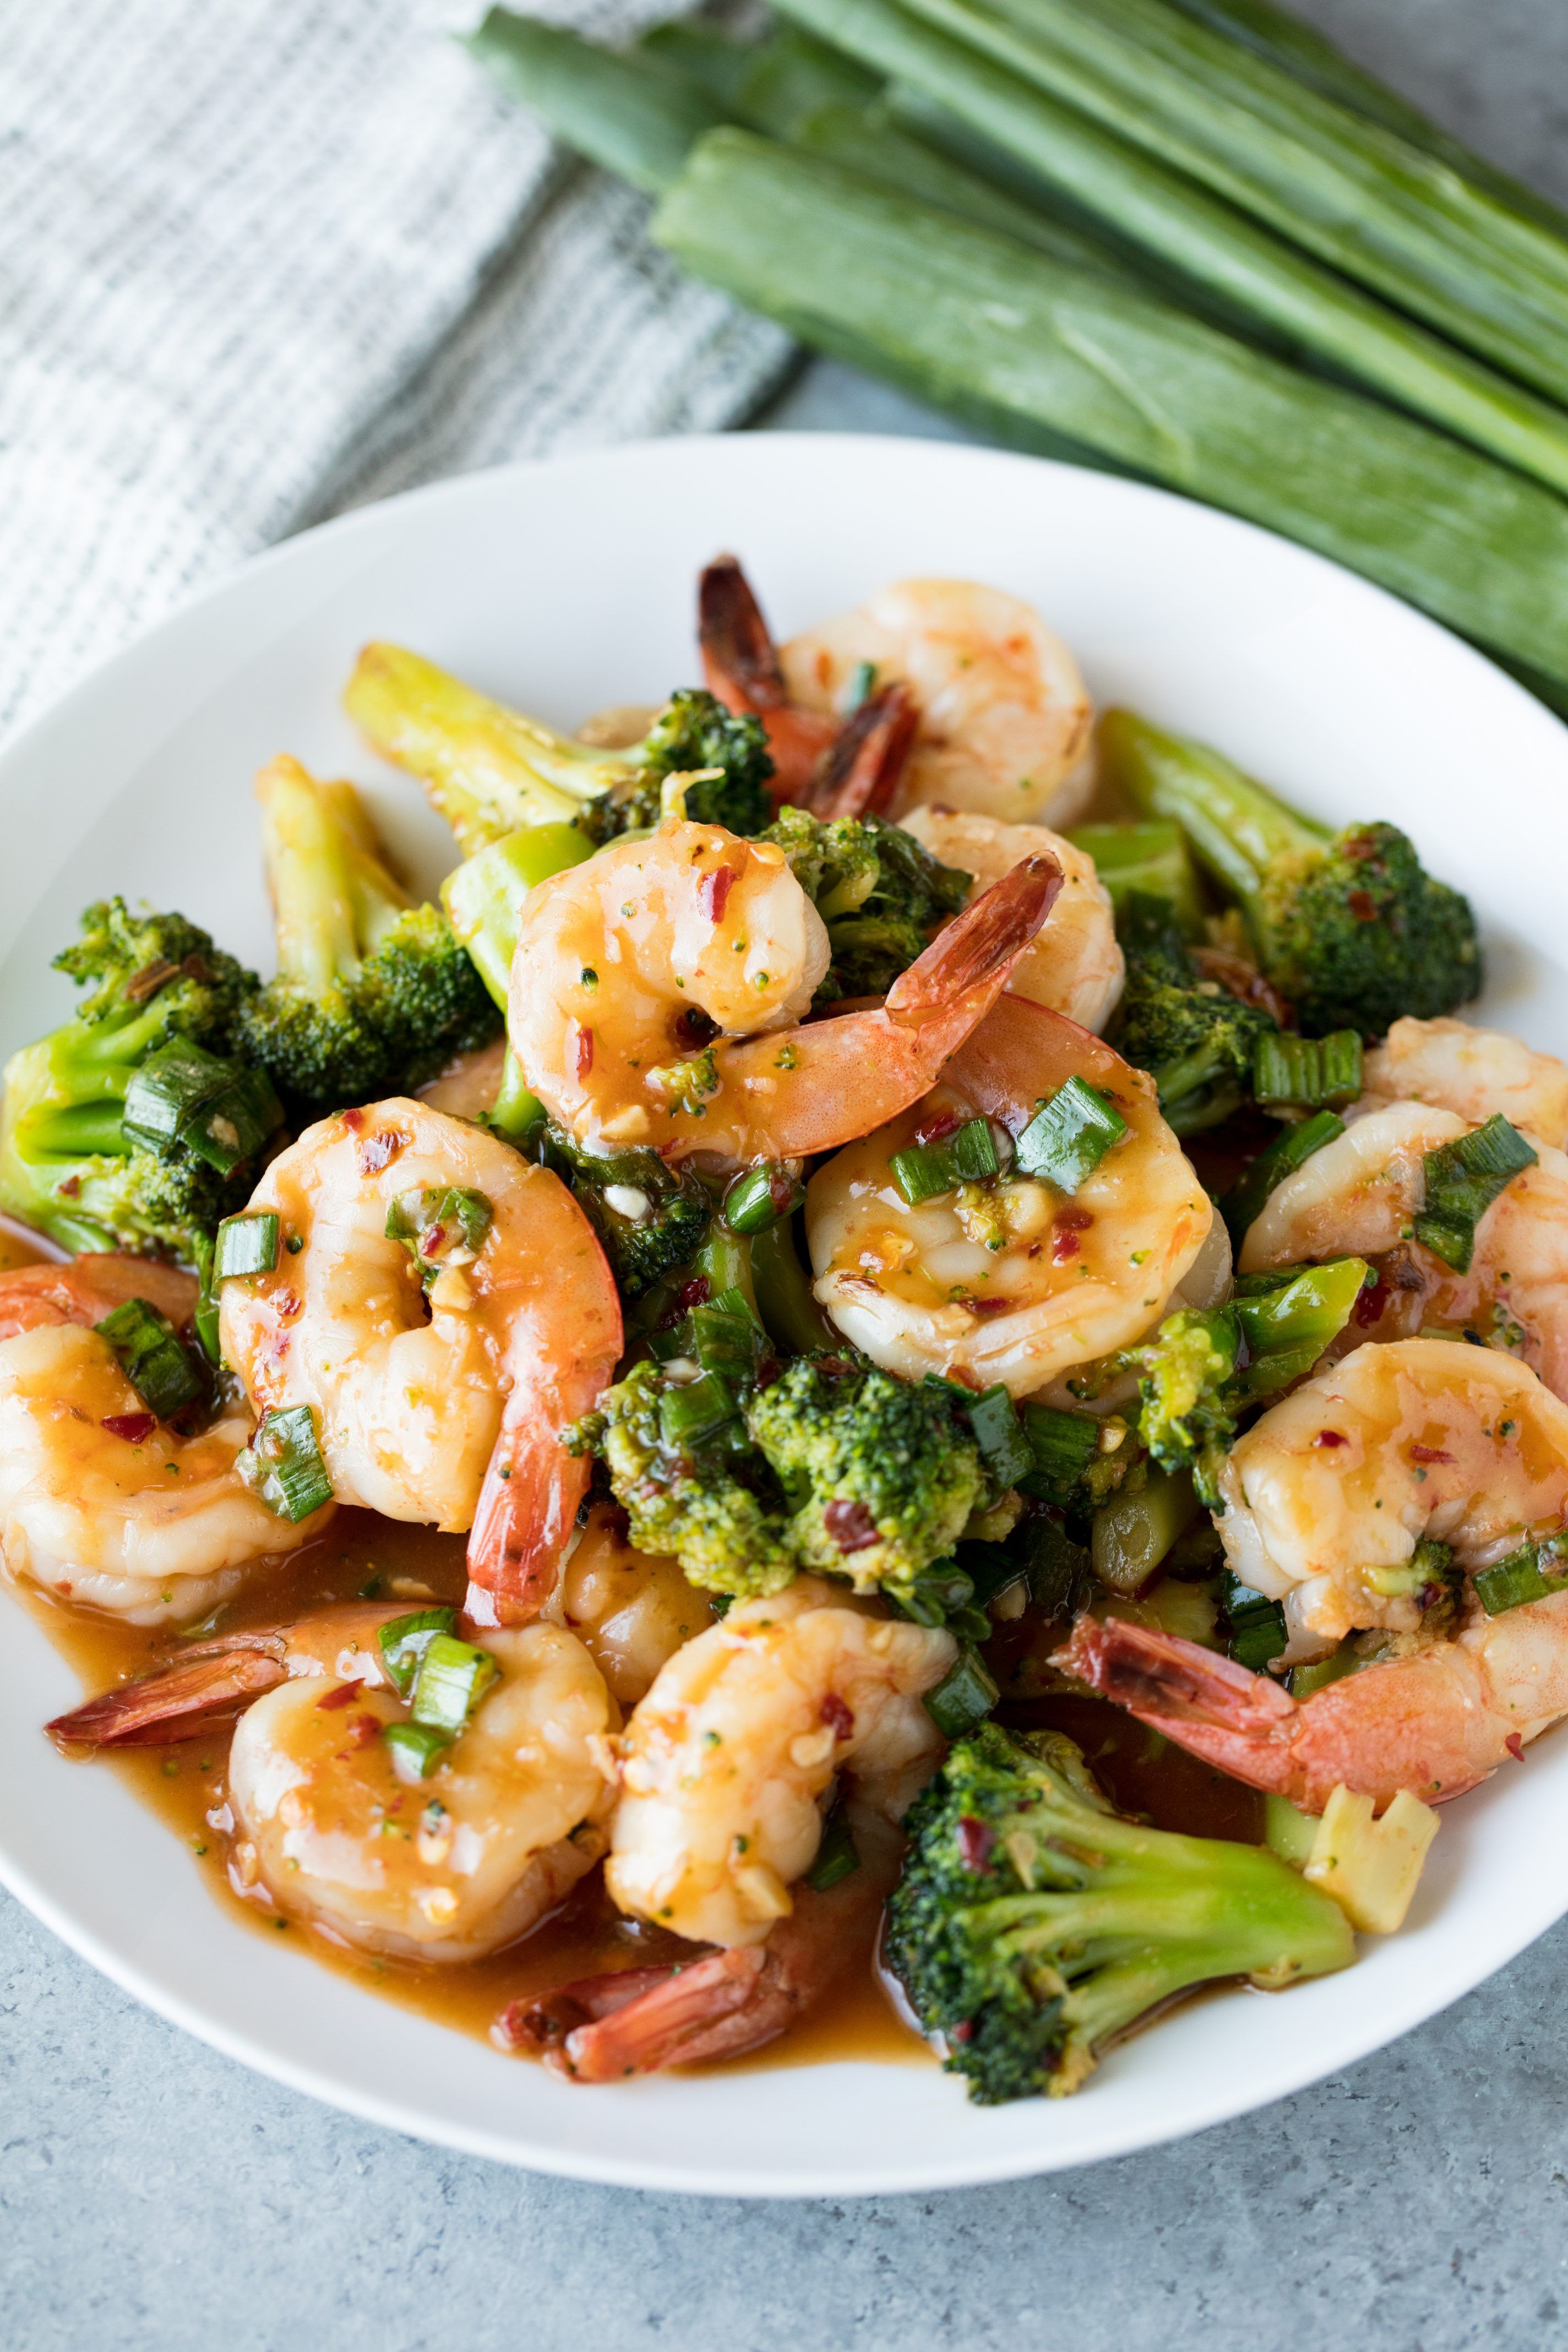 Spicy szechuan shrimp and broccoli recipe super easy broccoli spicy szechuan shrimp and broccoli chinese food recipeschinese forumfinder Images